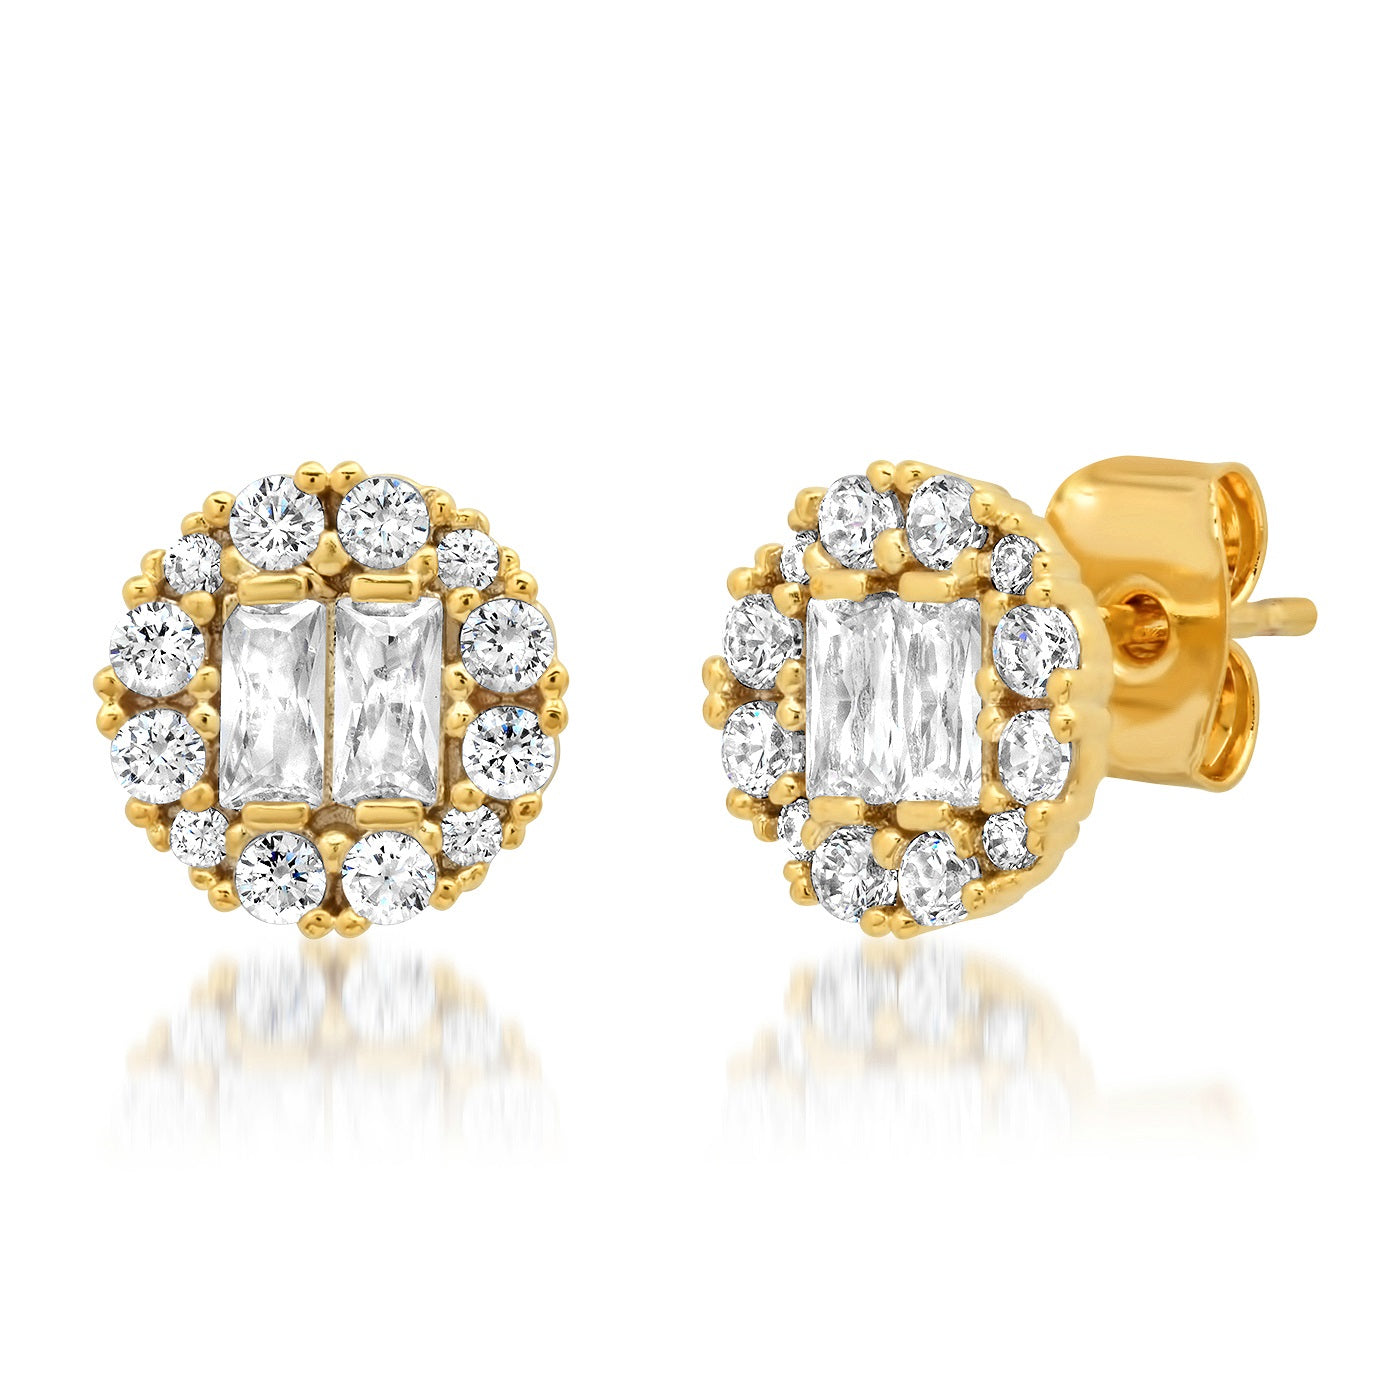 Circular CZ Stud with Round and Baguette Stones